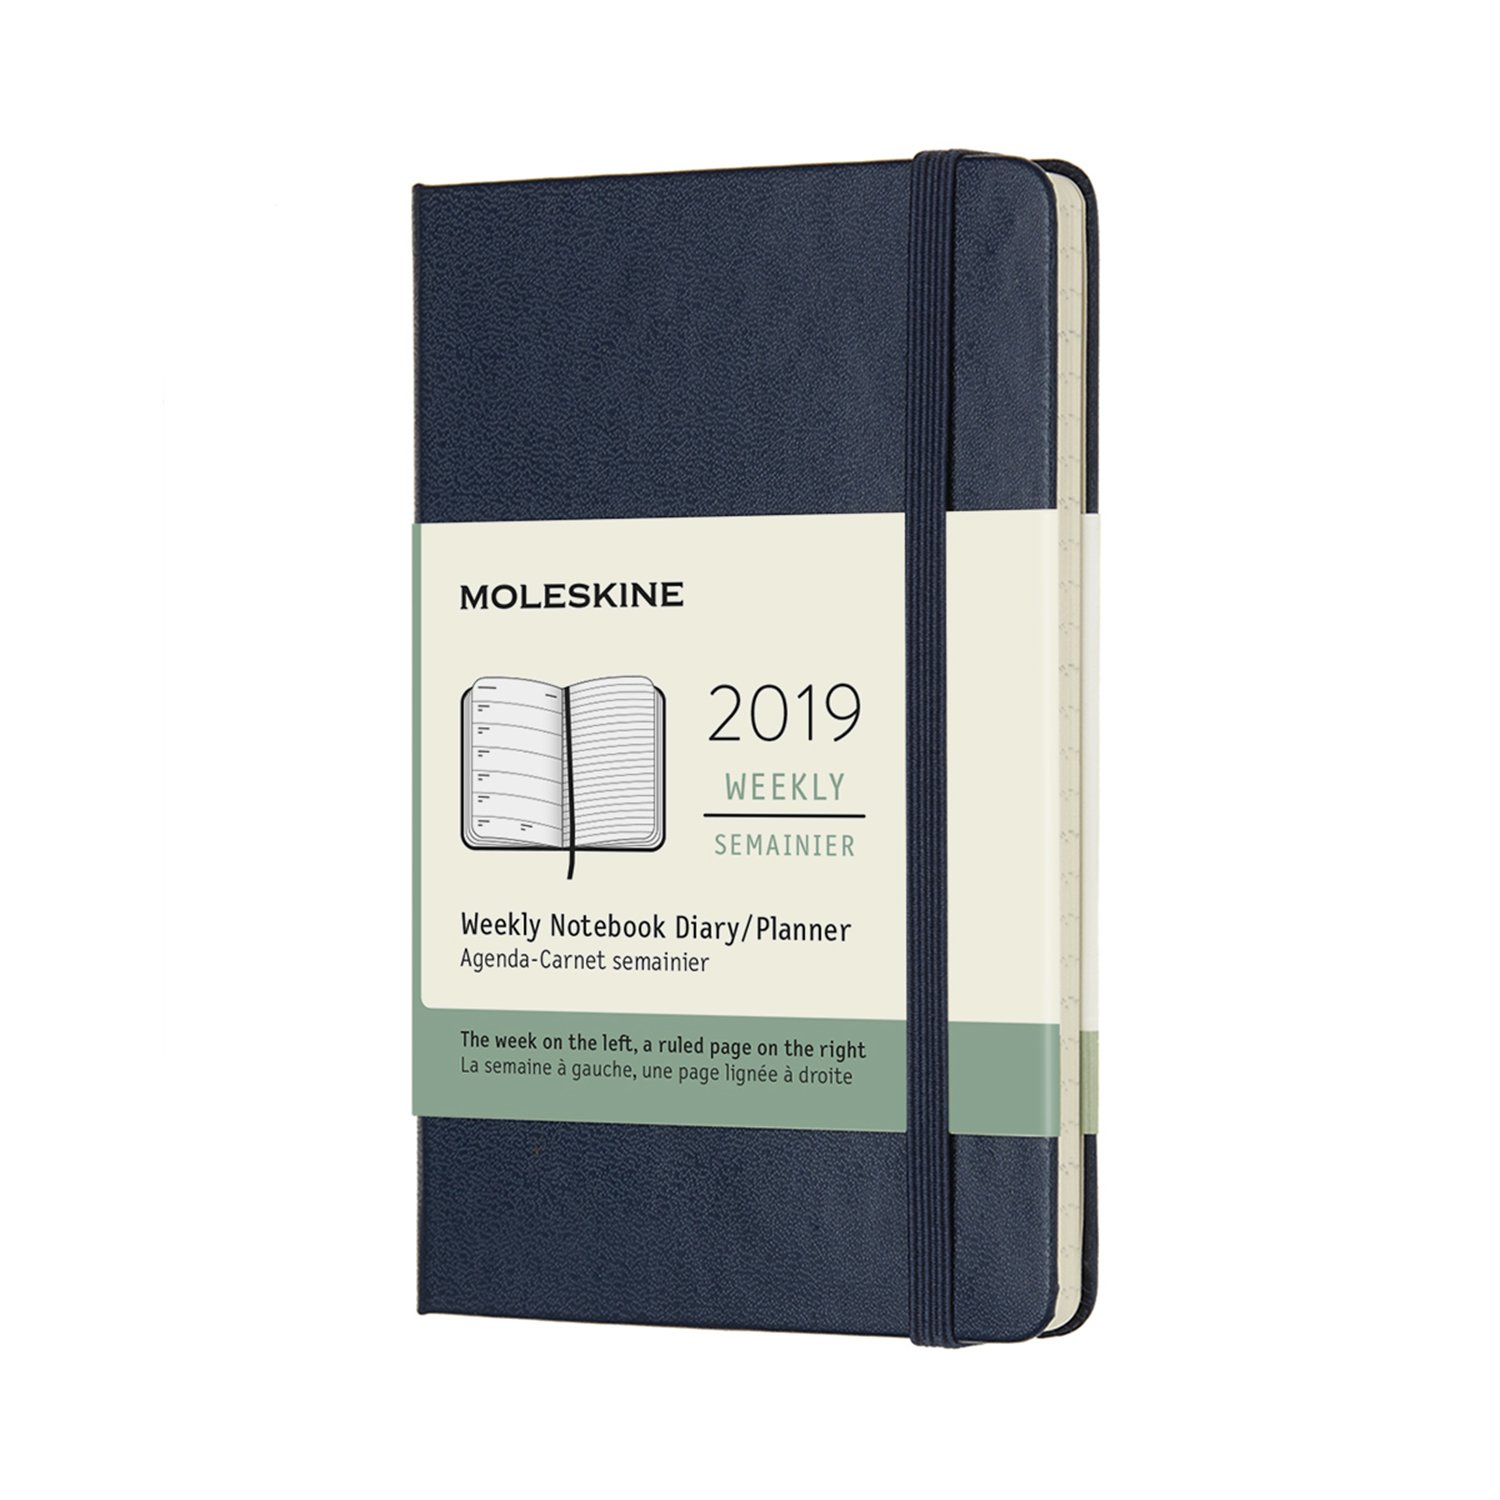 Moleskine 2019 12M Weekly Notebook, Pocket, Weekly Notebook, Blue Sapphire, Hard Cover (3.5 x 5.5)